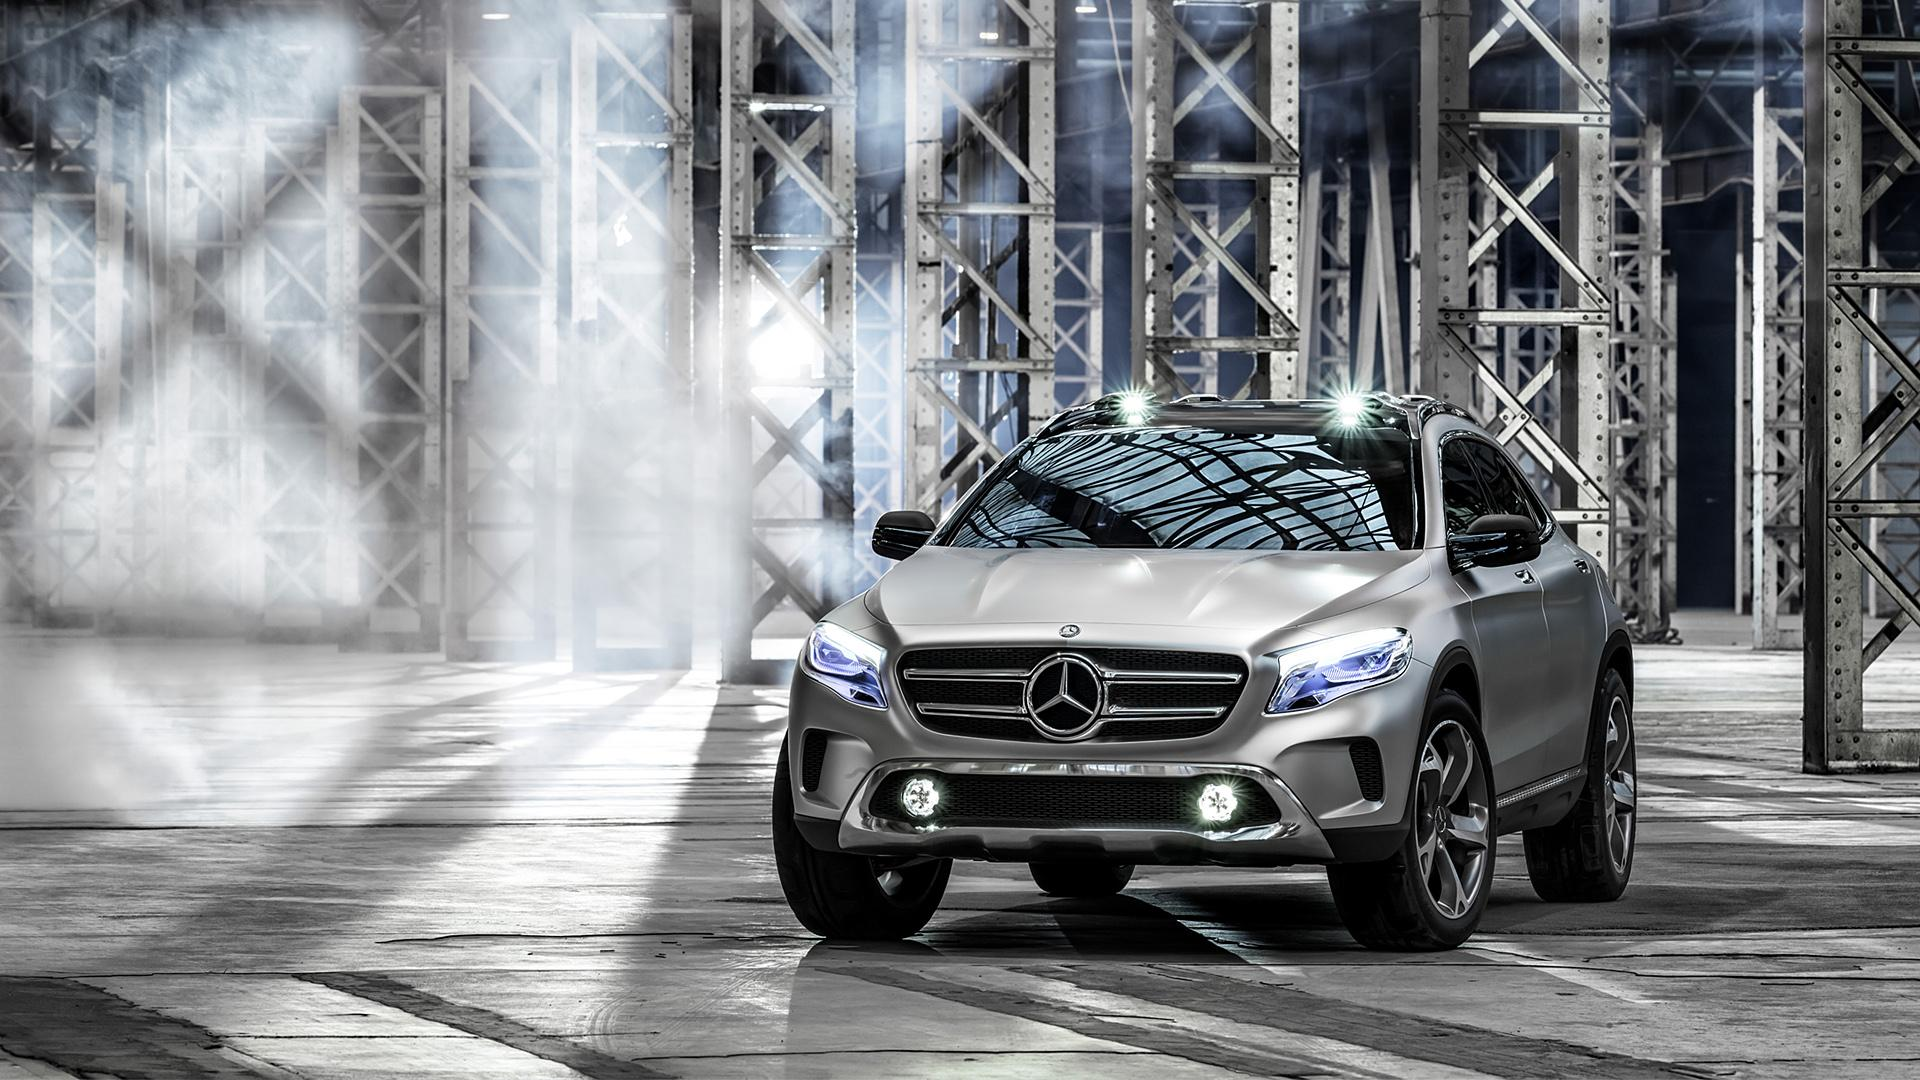 2013 Mercedes-Benz GLA Concept Wallpapers & HD Images - WSupercars